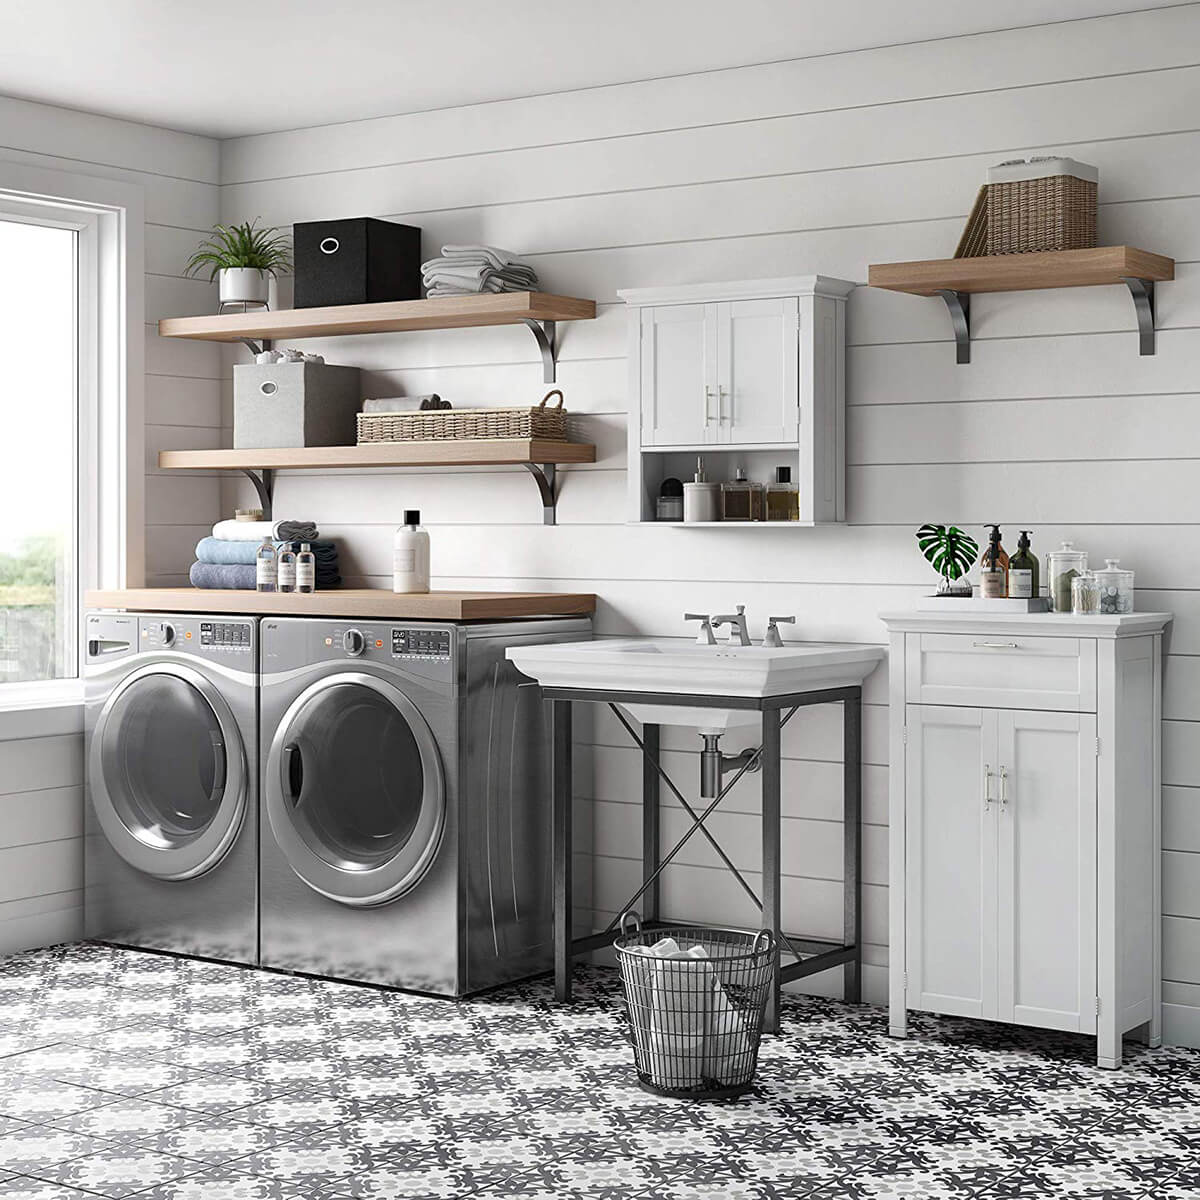 30 of the Most Stylish and Best Laundry Room Cabinets to ... on Laundry Room Cabinets  id=36193